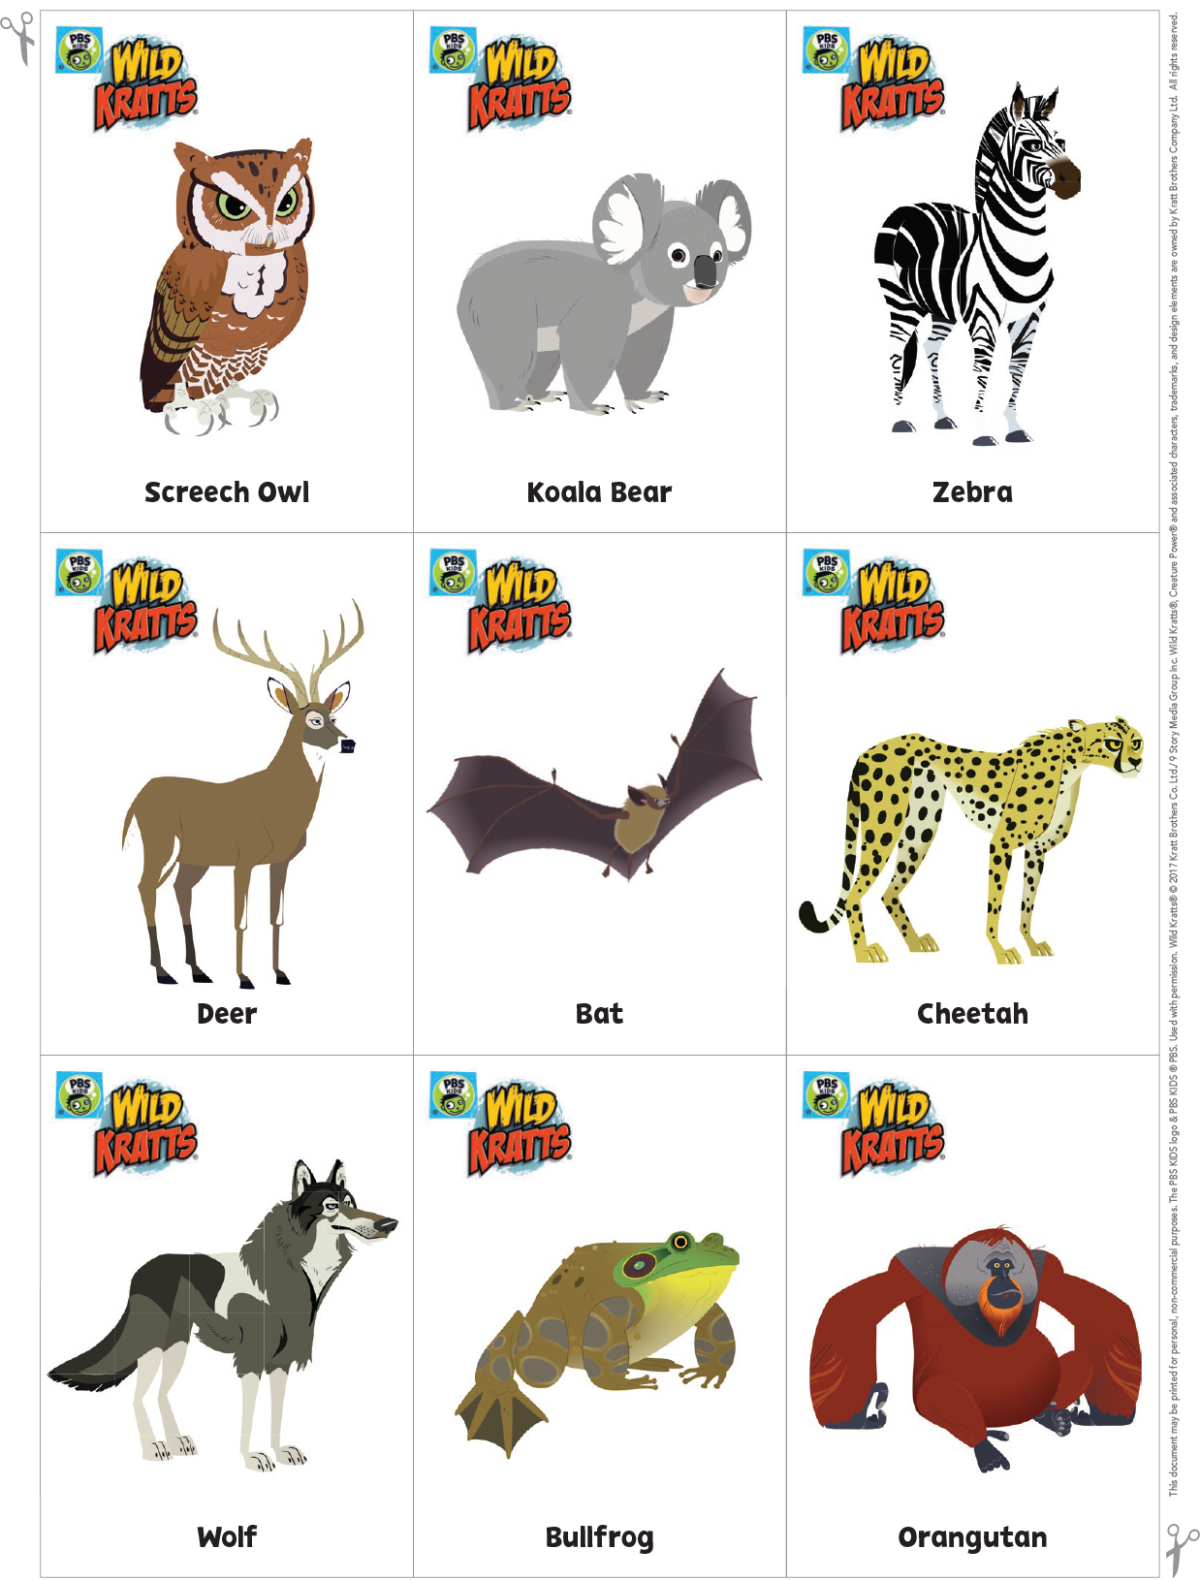 Go Wild Card Game Kids Coloring Pages Pbs Kids For Parents Wild Kratts Birthday Party Wild Kratts Birthday Wild Kratts Party [ 1581 x 1200 Pixel ]